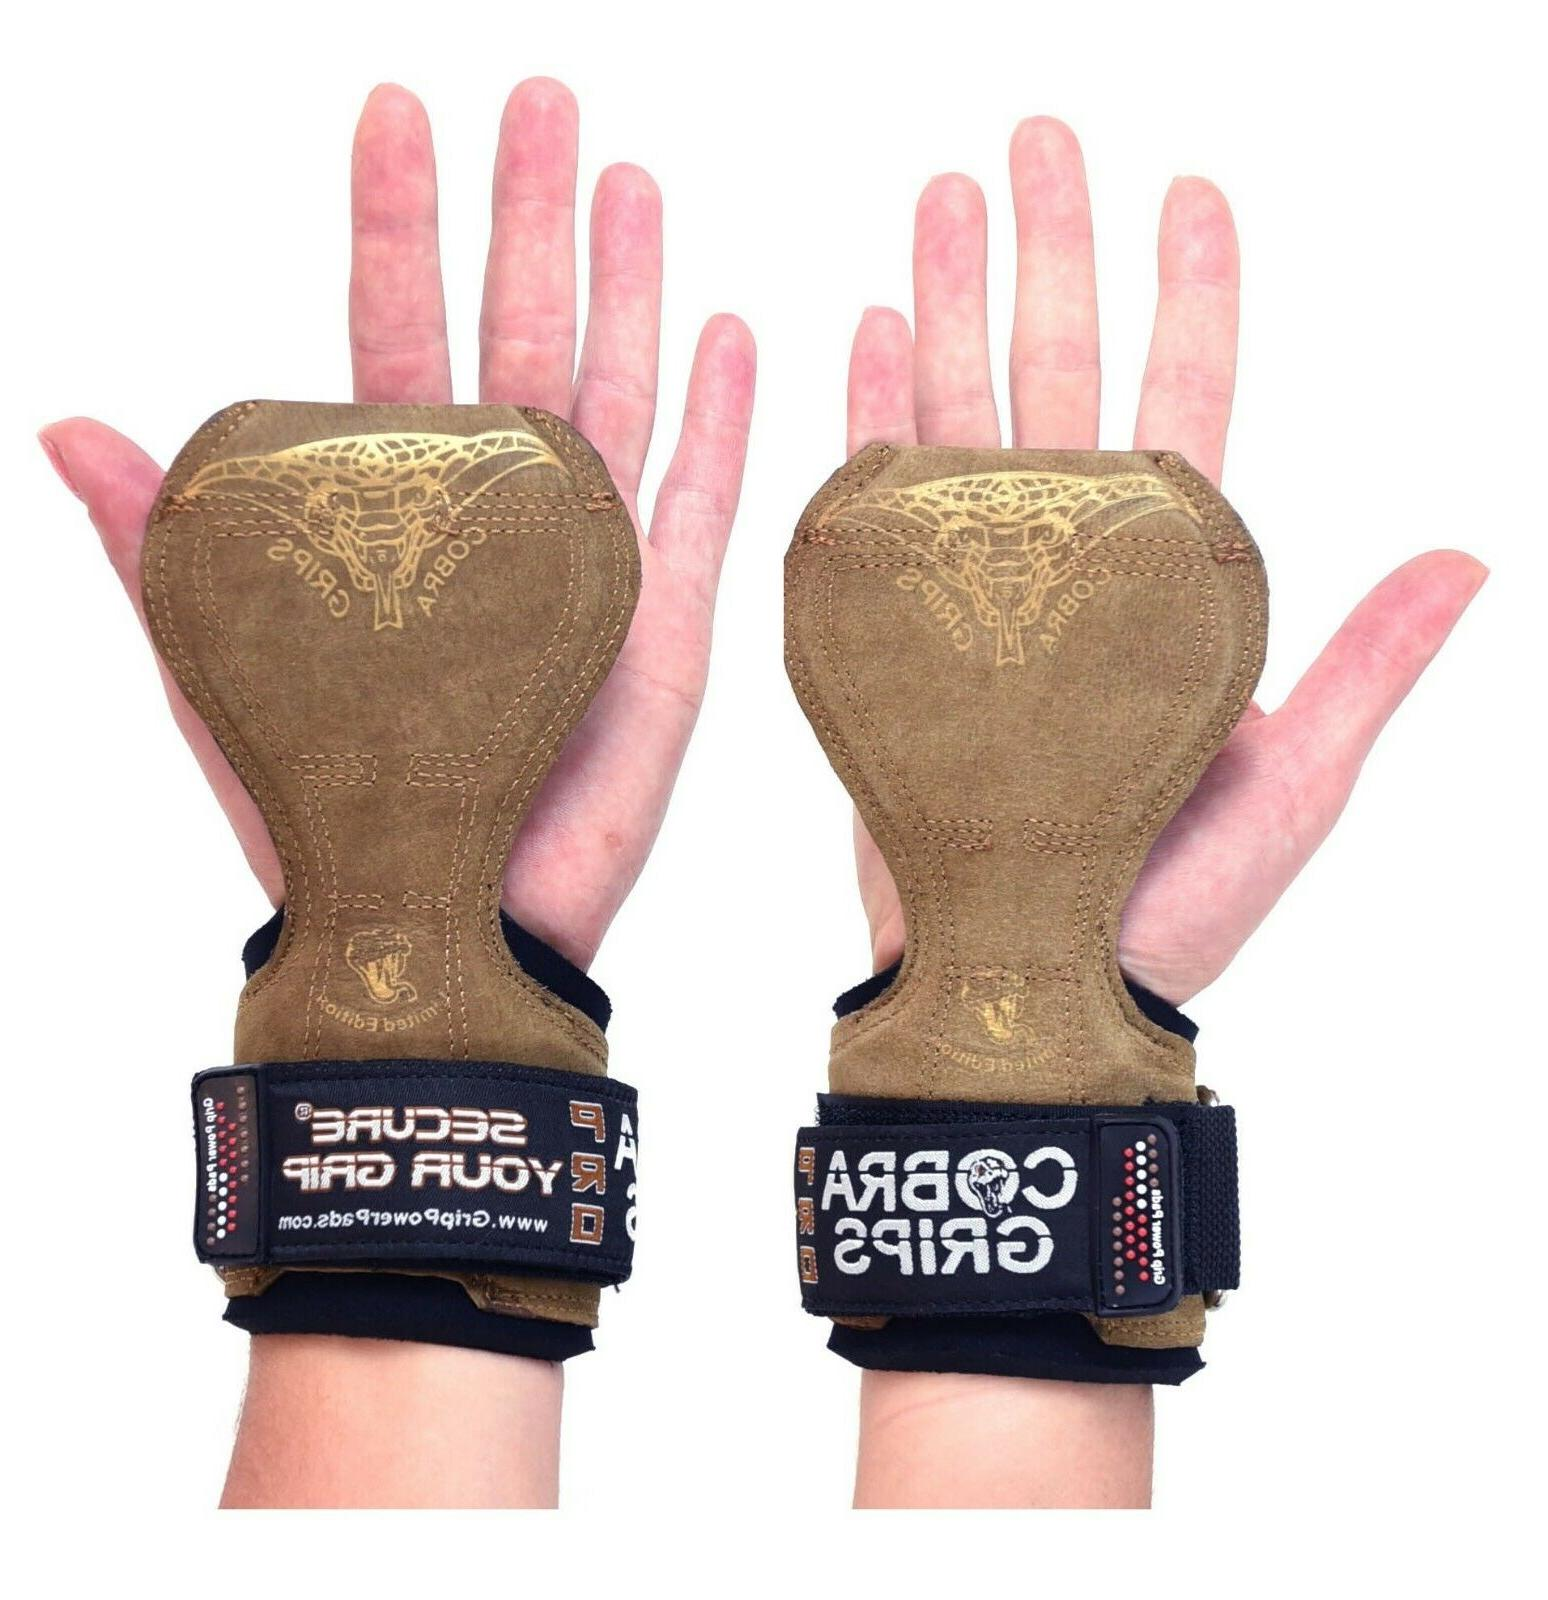 Cobra FIT Body Building Gloves Sports Weight Lifting Grips